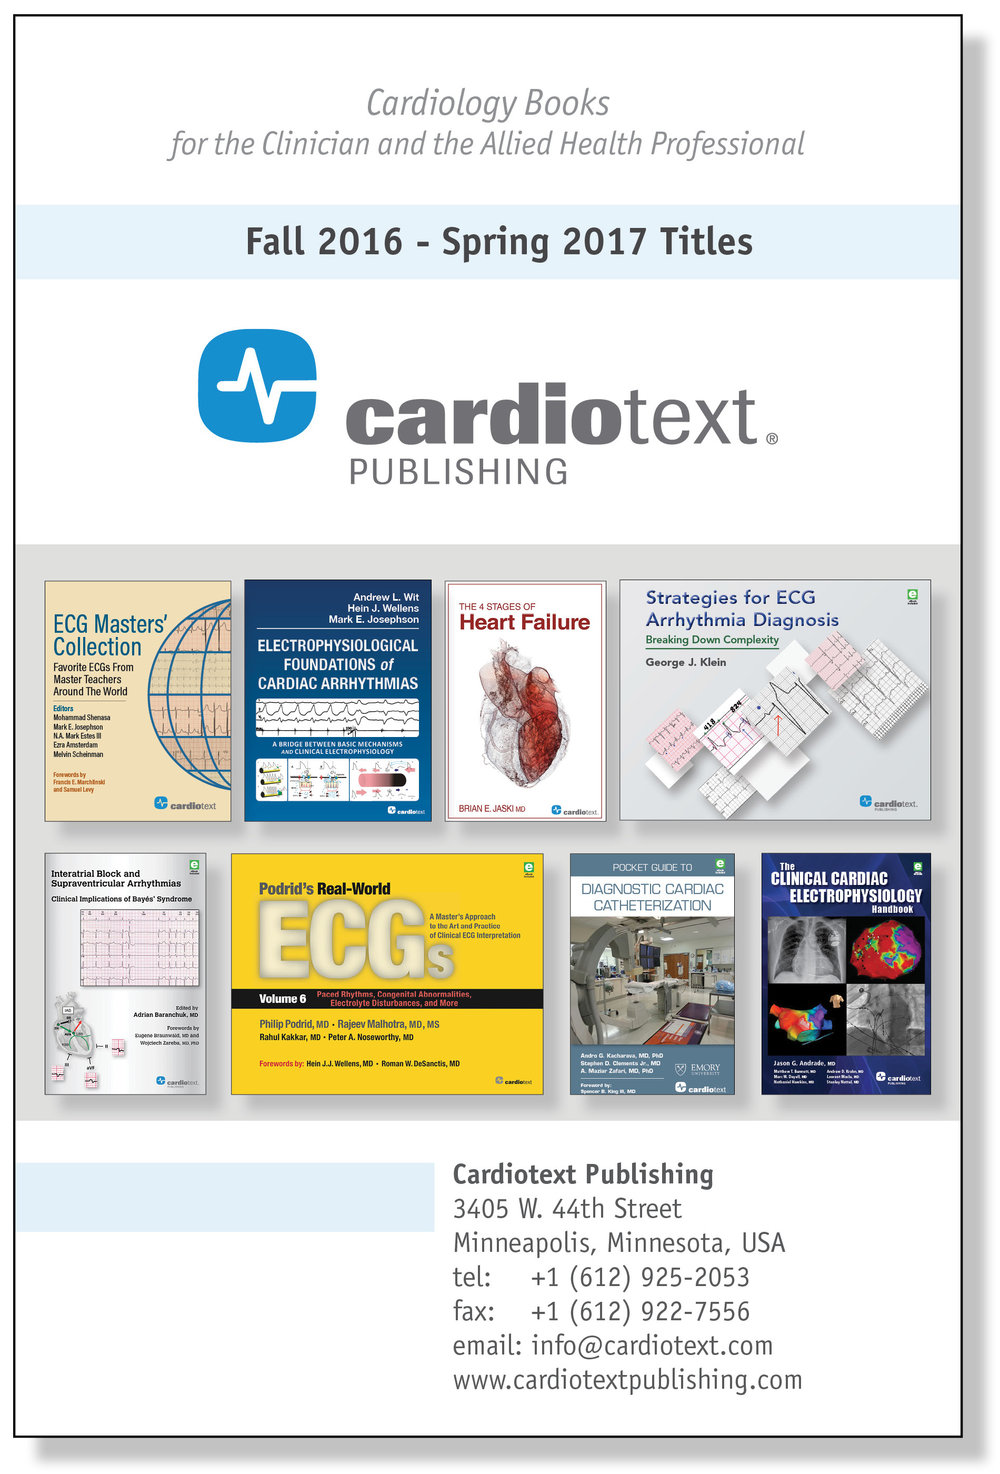 Cardiotext Publishing Fall/Winter 2016-2017 Catalog [PDF]